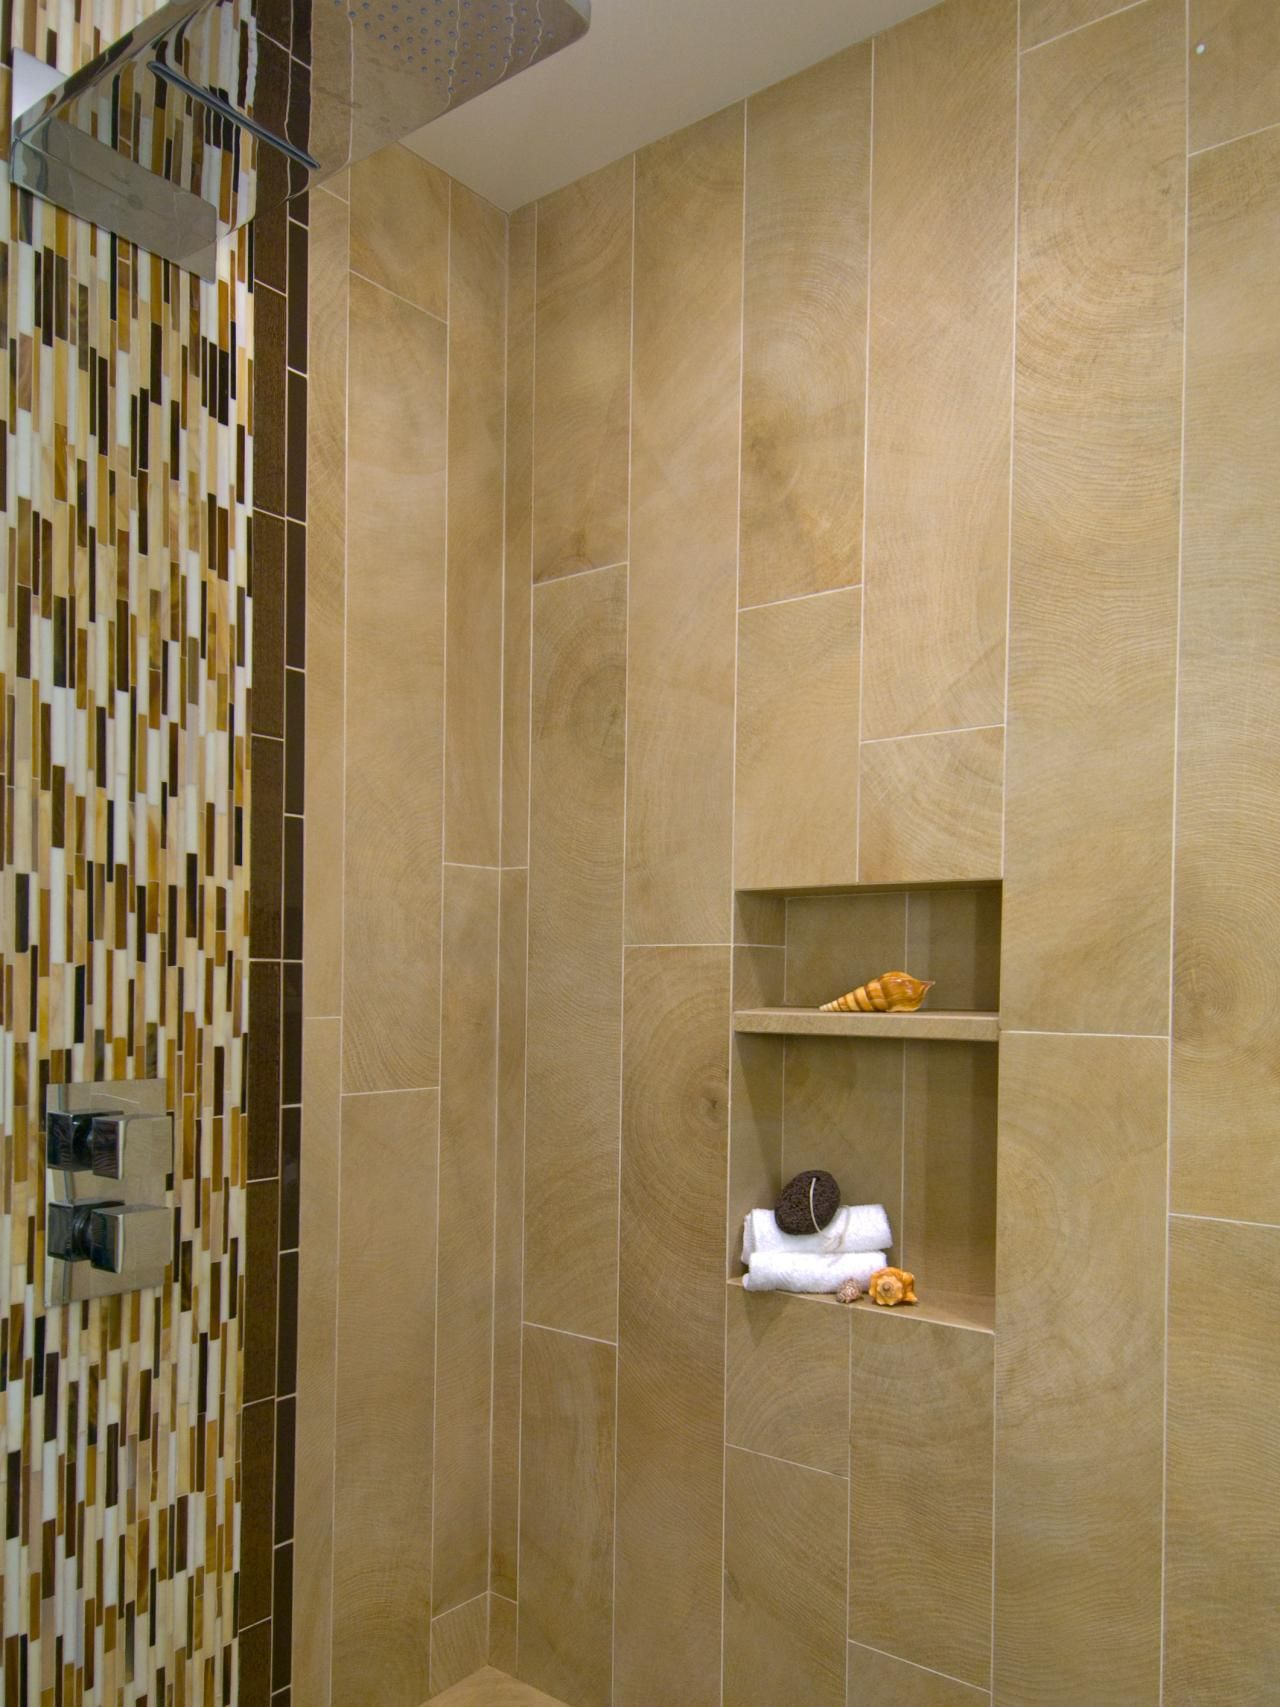 Large Tile Vertical Shower Google Search Bathroom Wall Tile Bathroom Shower Walls Wall Tiles Design